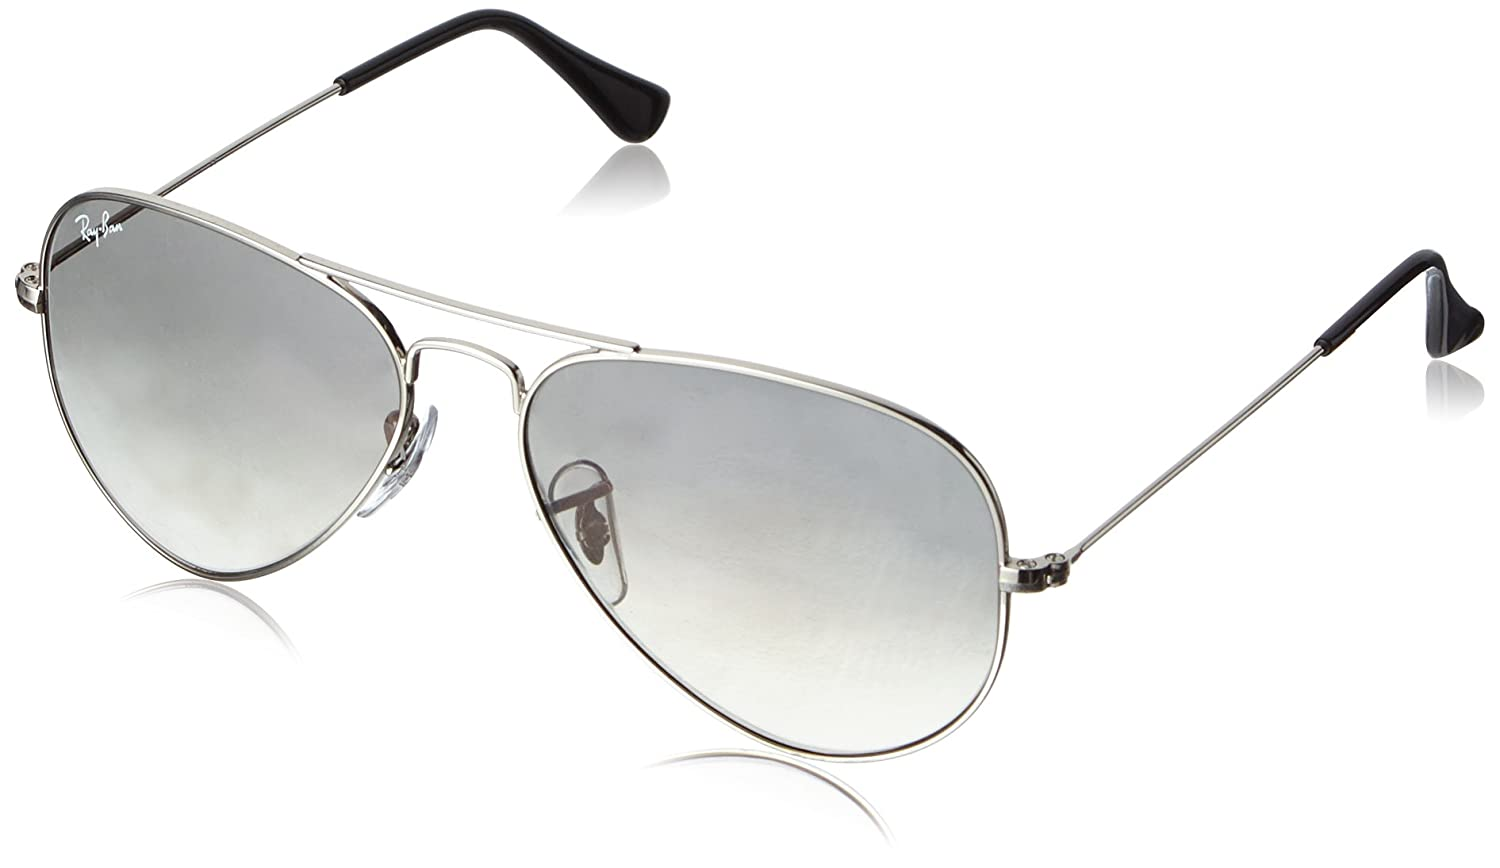 sunglasses aviator ray ban  Amazon.com: Ray-Ban 0RB3025 Aviator Metal Non-Polarized Sunglasses ...